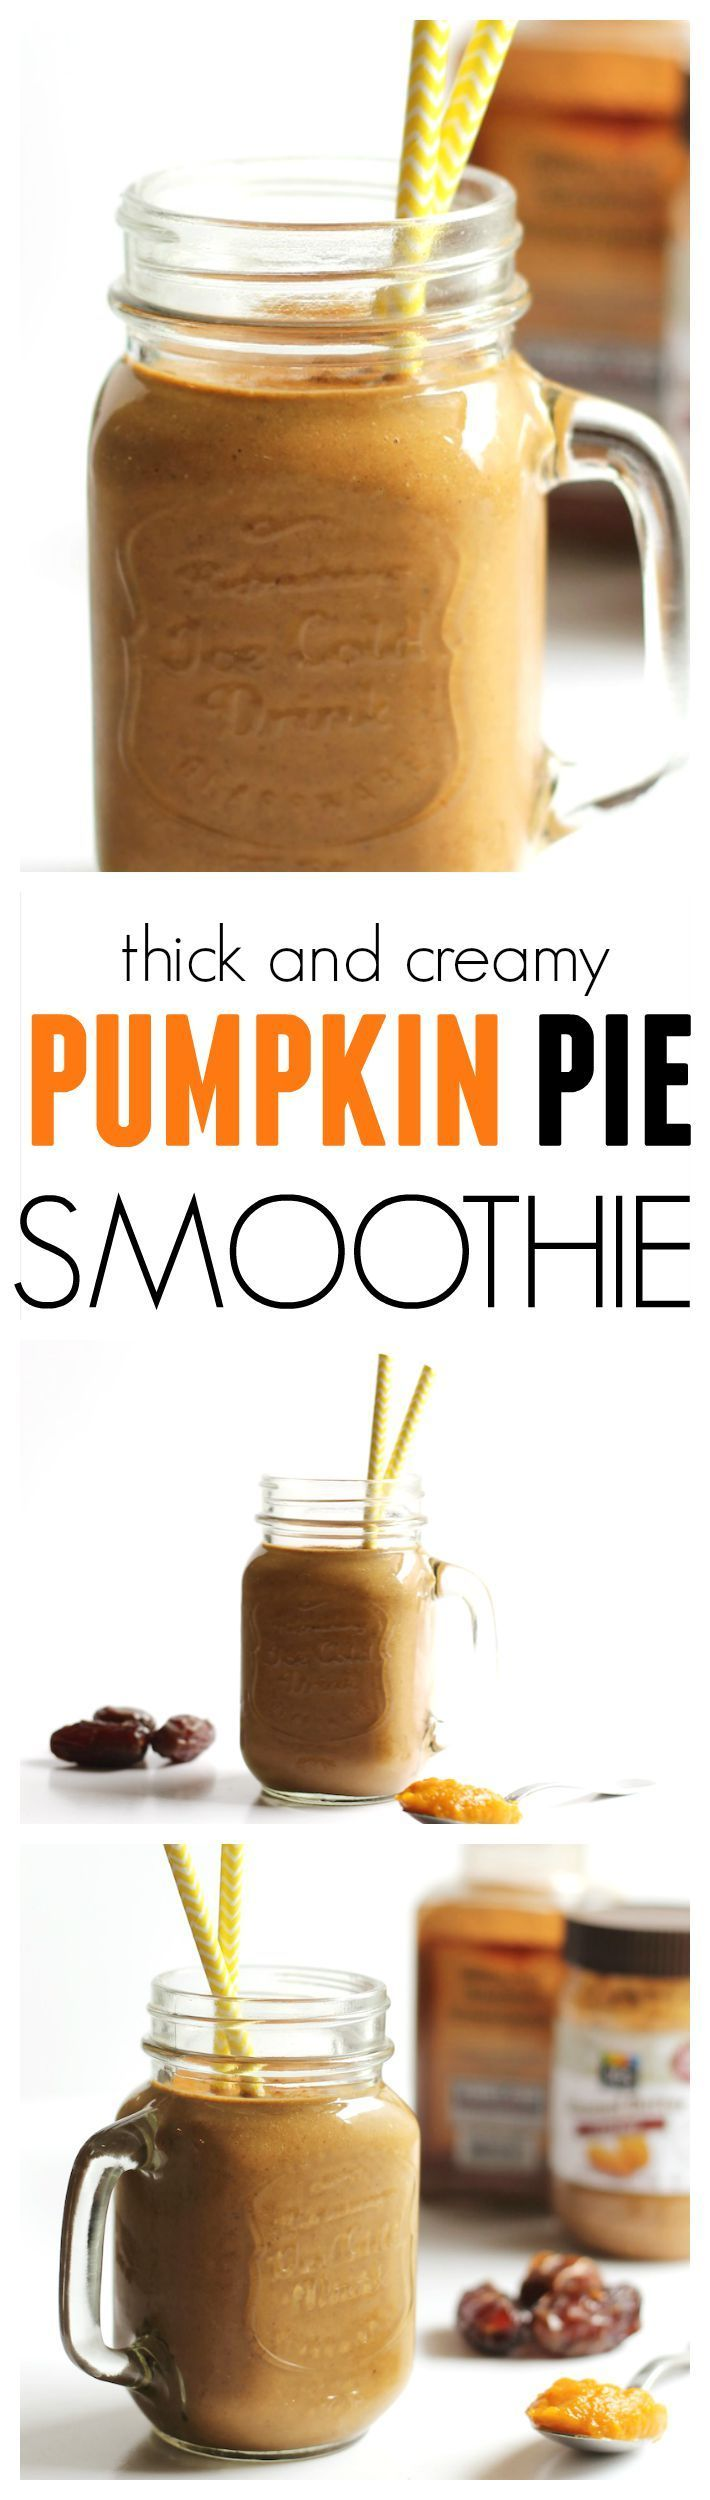 Thick & Creamy Pumpkin Pie Smoothie // gluten free, no added sugar, vegan #fall